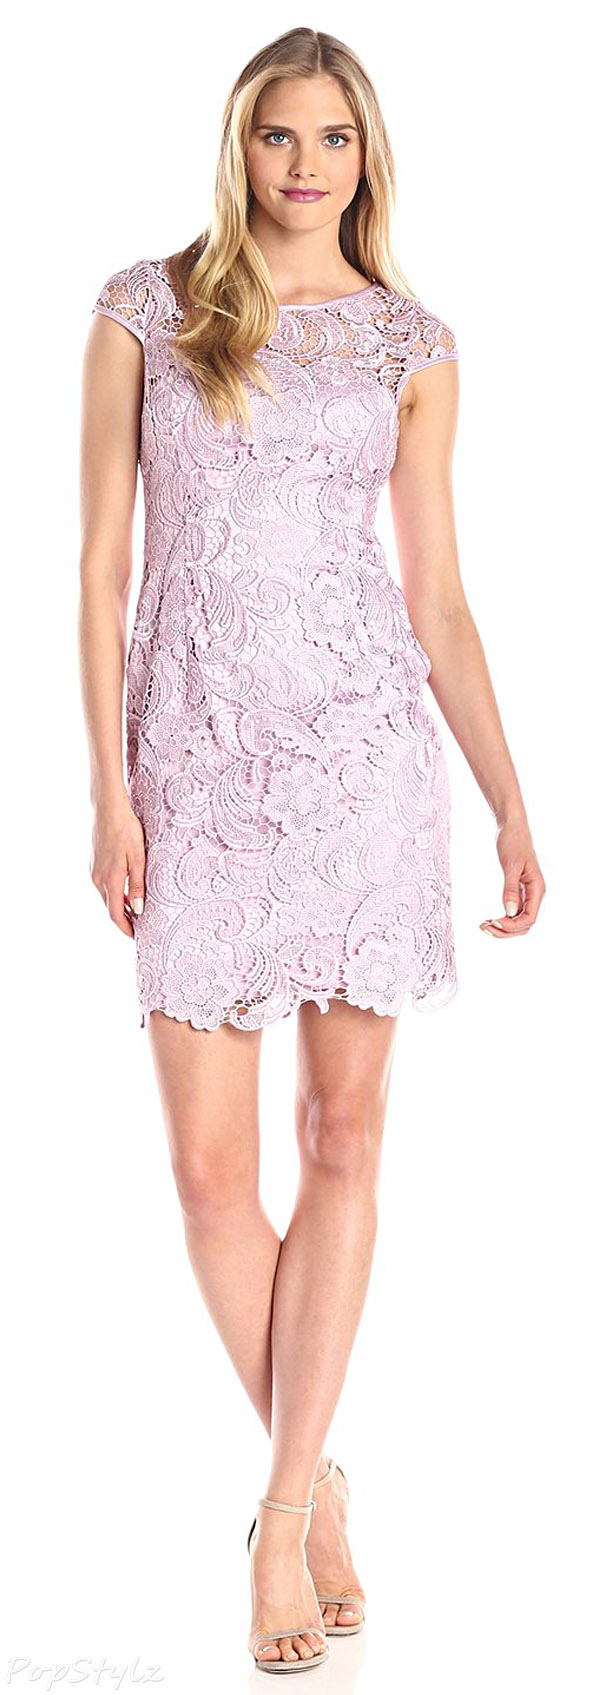 Adrianna Papell Icy Lilac Cap-Sleeve Lace Dress